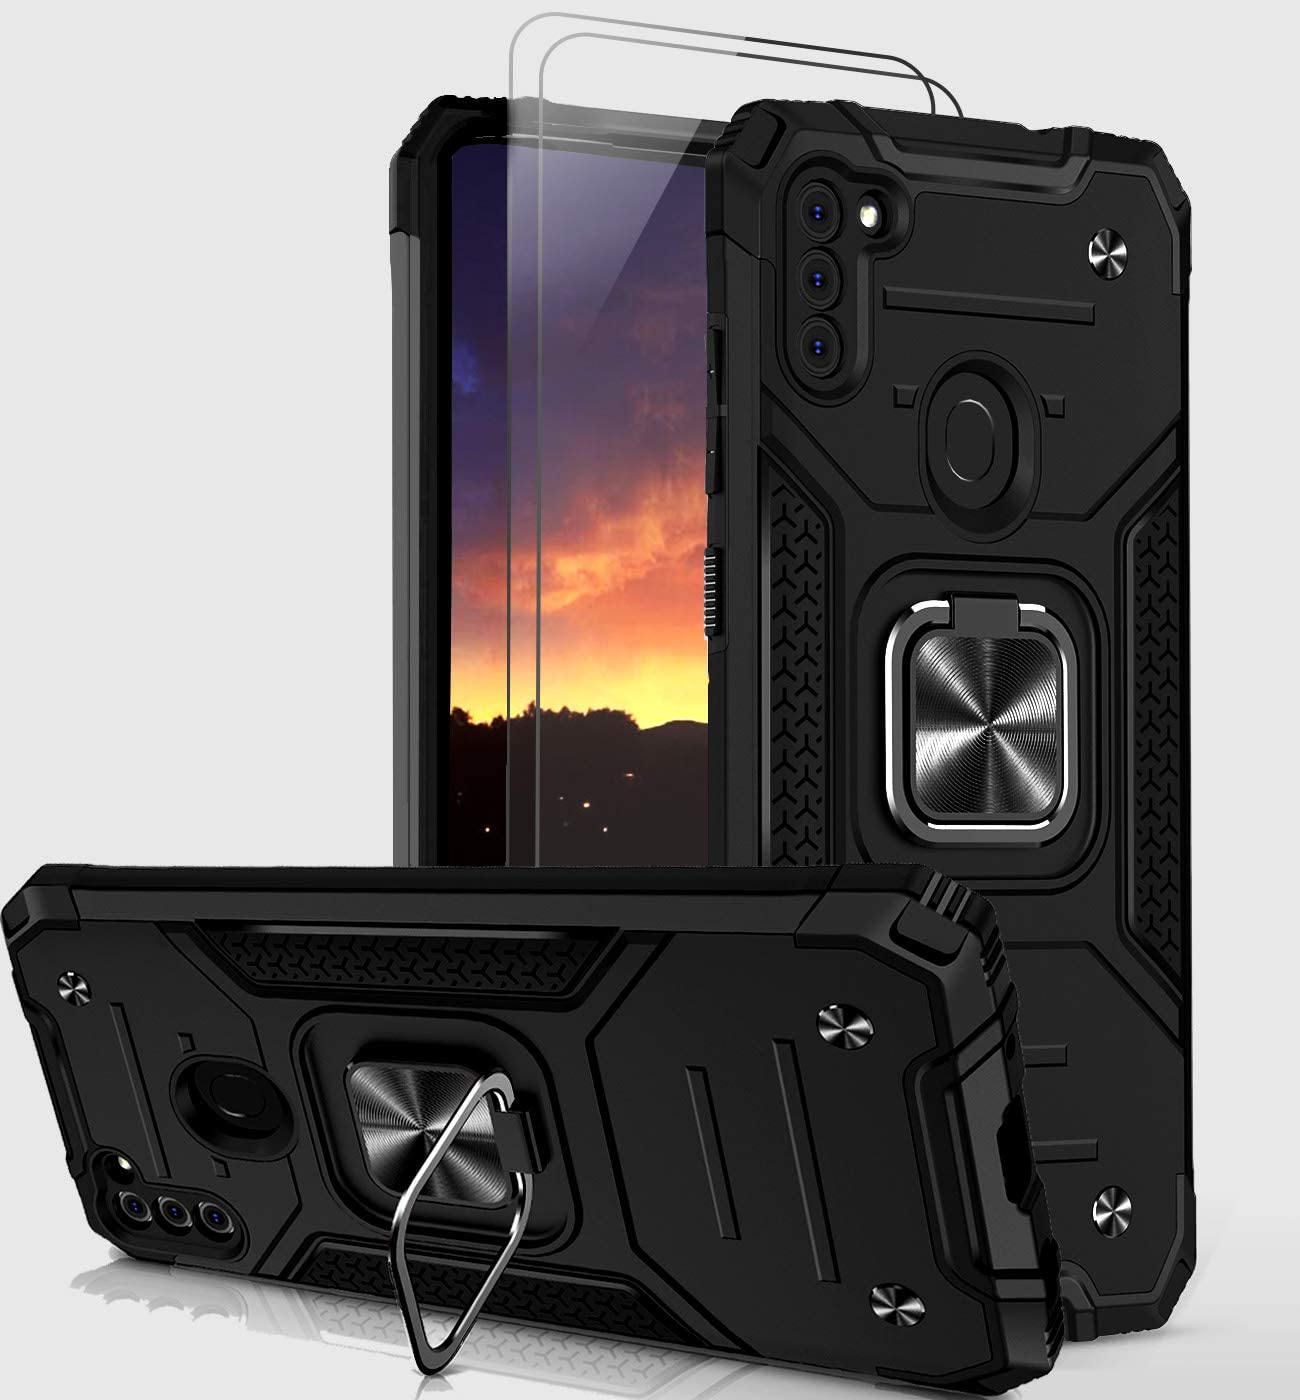 Bonkier Galaxy A11 Case with 9H Tempered Glass Screen Protector[2 Pack], [Military-Grade] Shockproof Samsung Galaxy A11 Phone Case with Ring Holder Kickstand (Black)